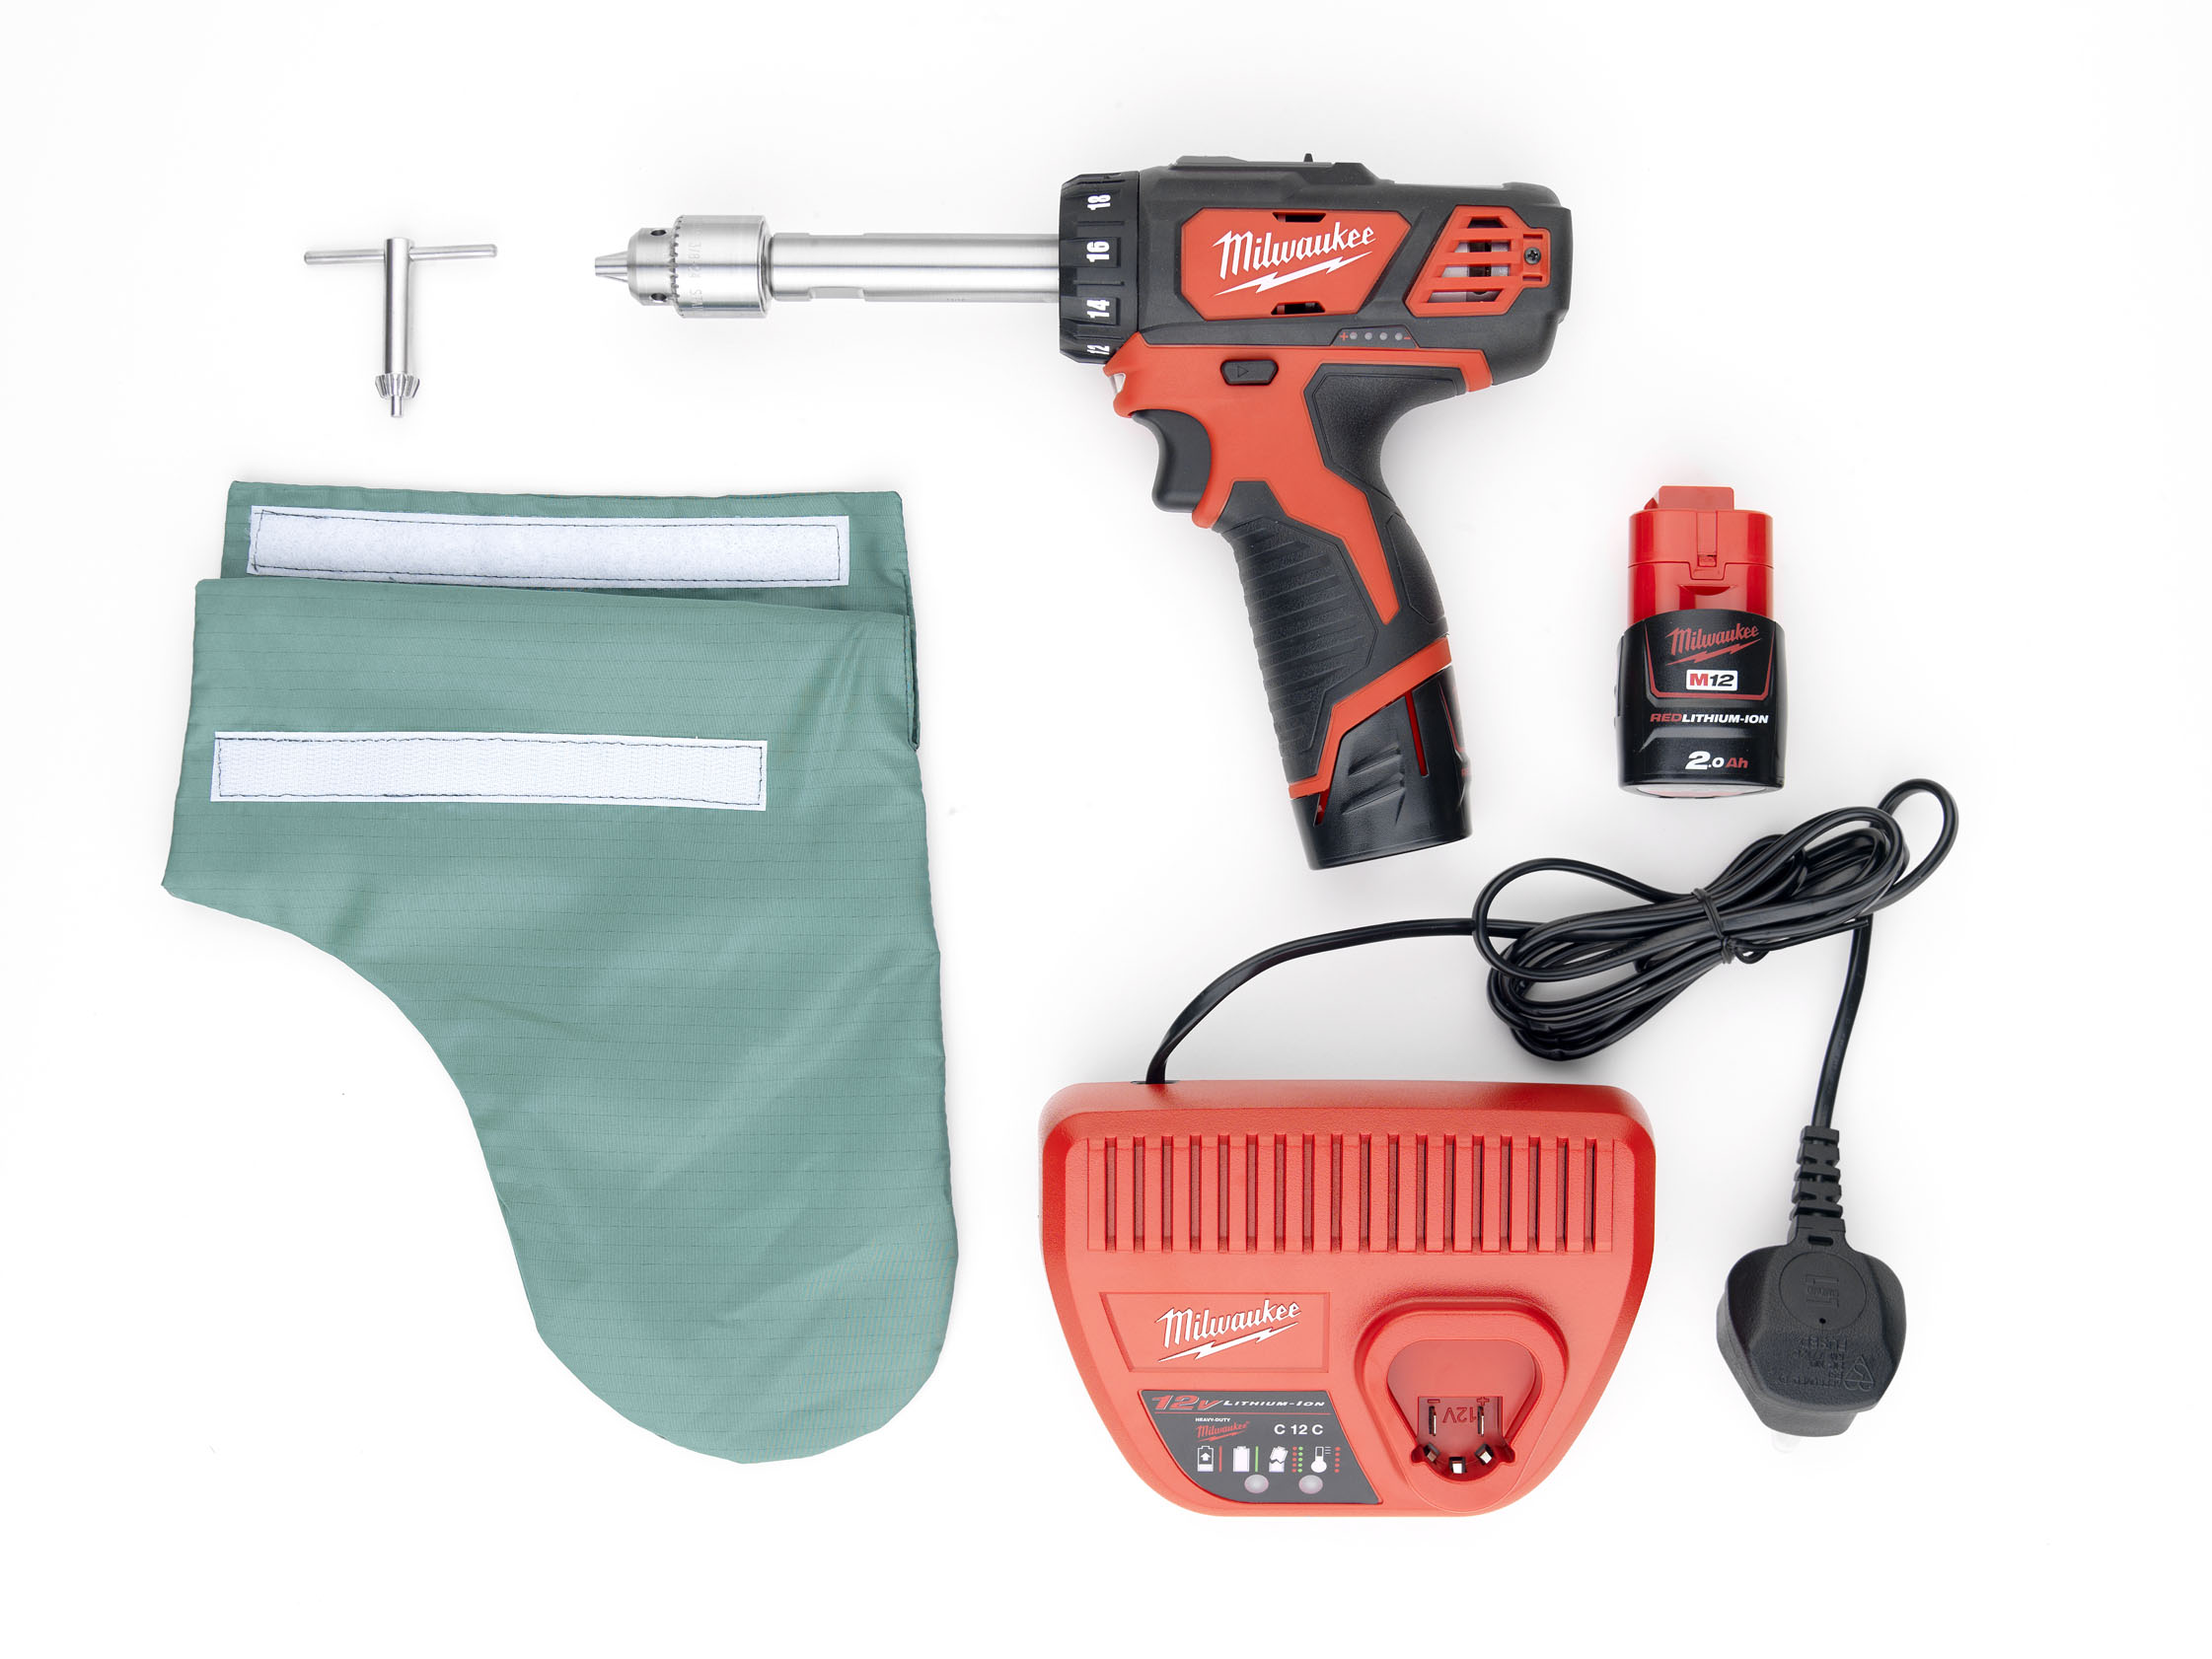 Electrical/ Battery Powered Tools and Equipment